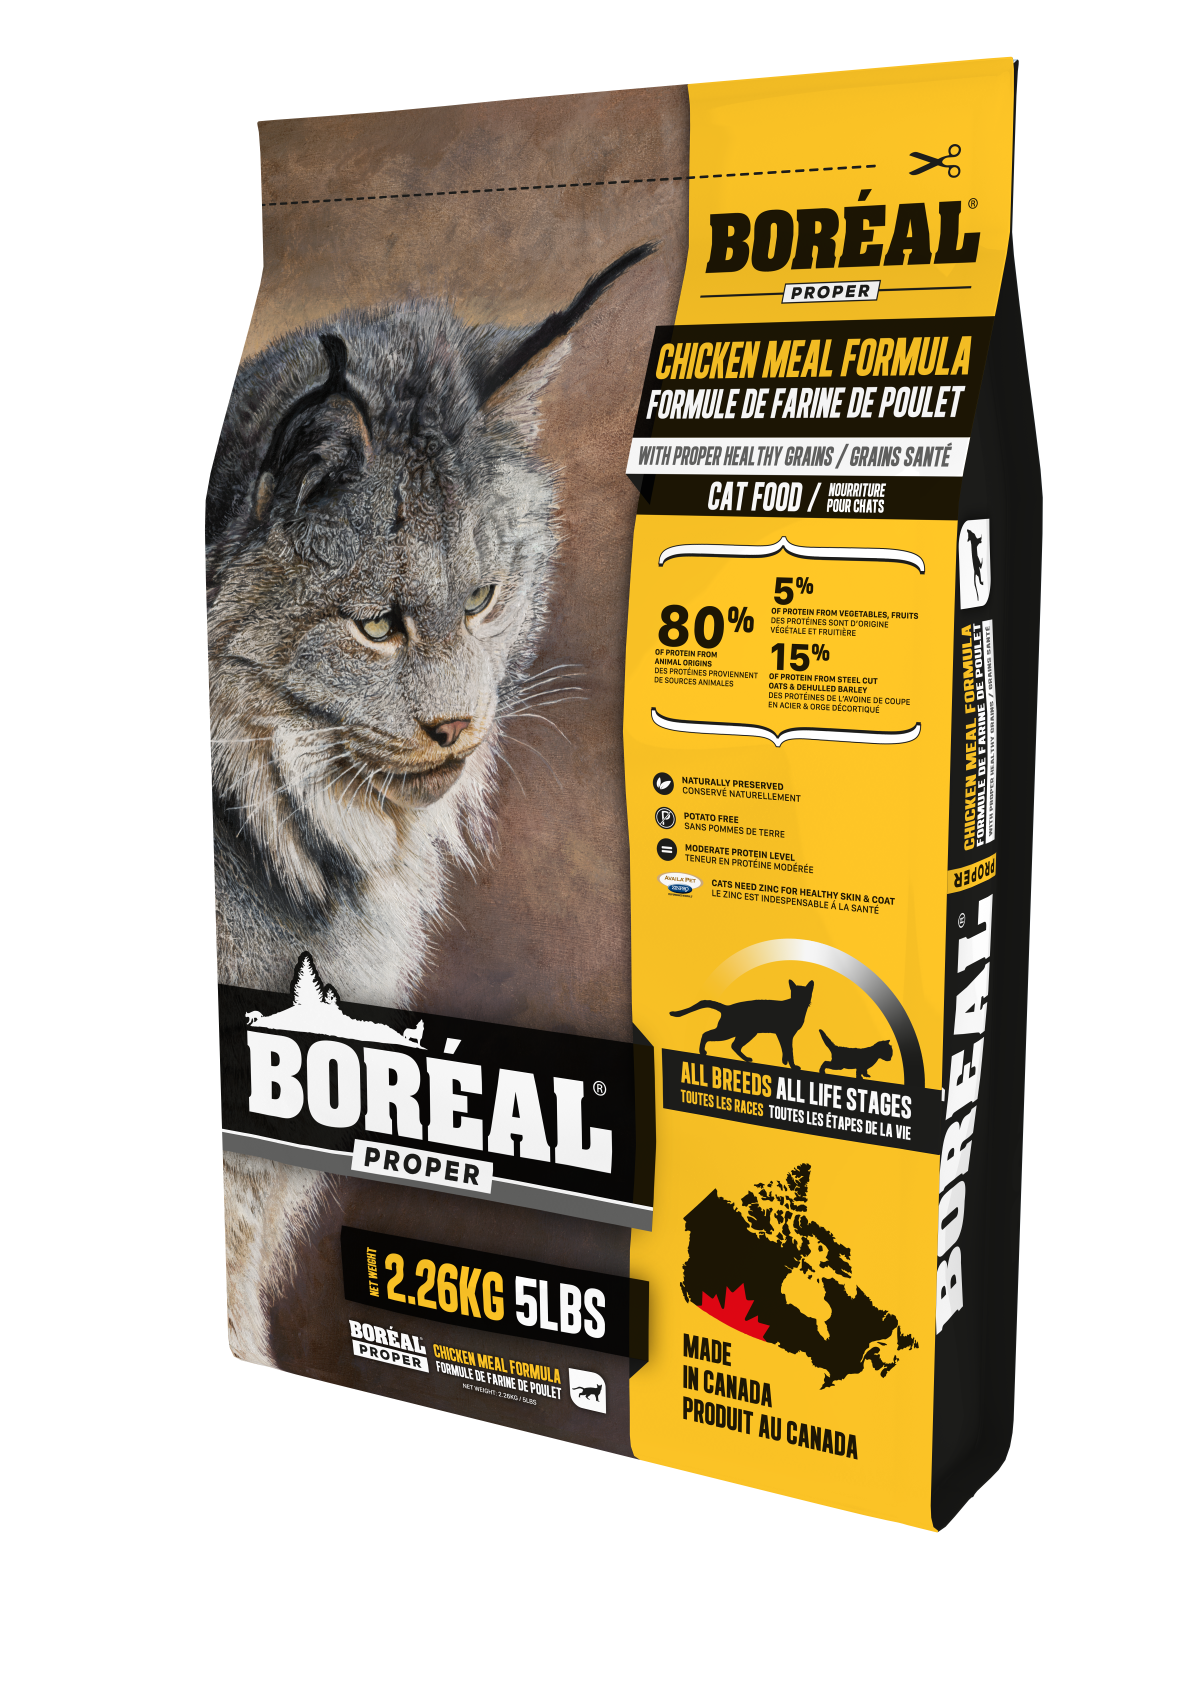 Boreal Proper Chicken Meal Low Carb Grains Dry Cat Food 5 Pound Bag at NJPetSupply.com